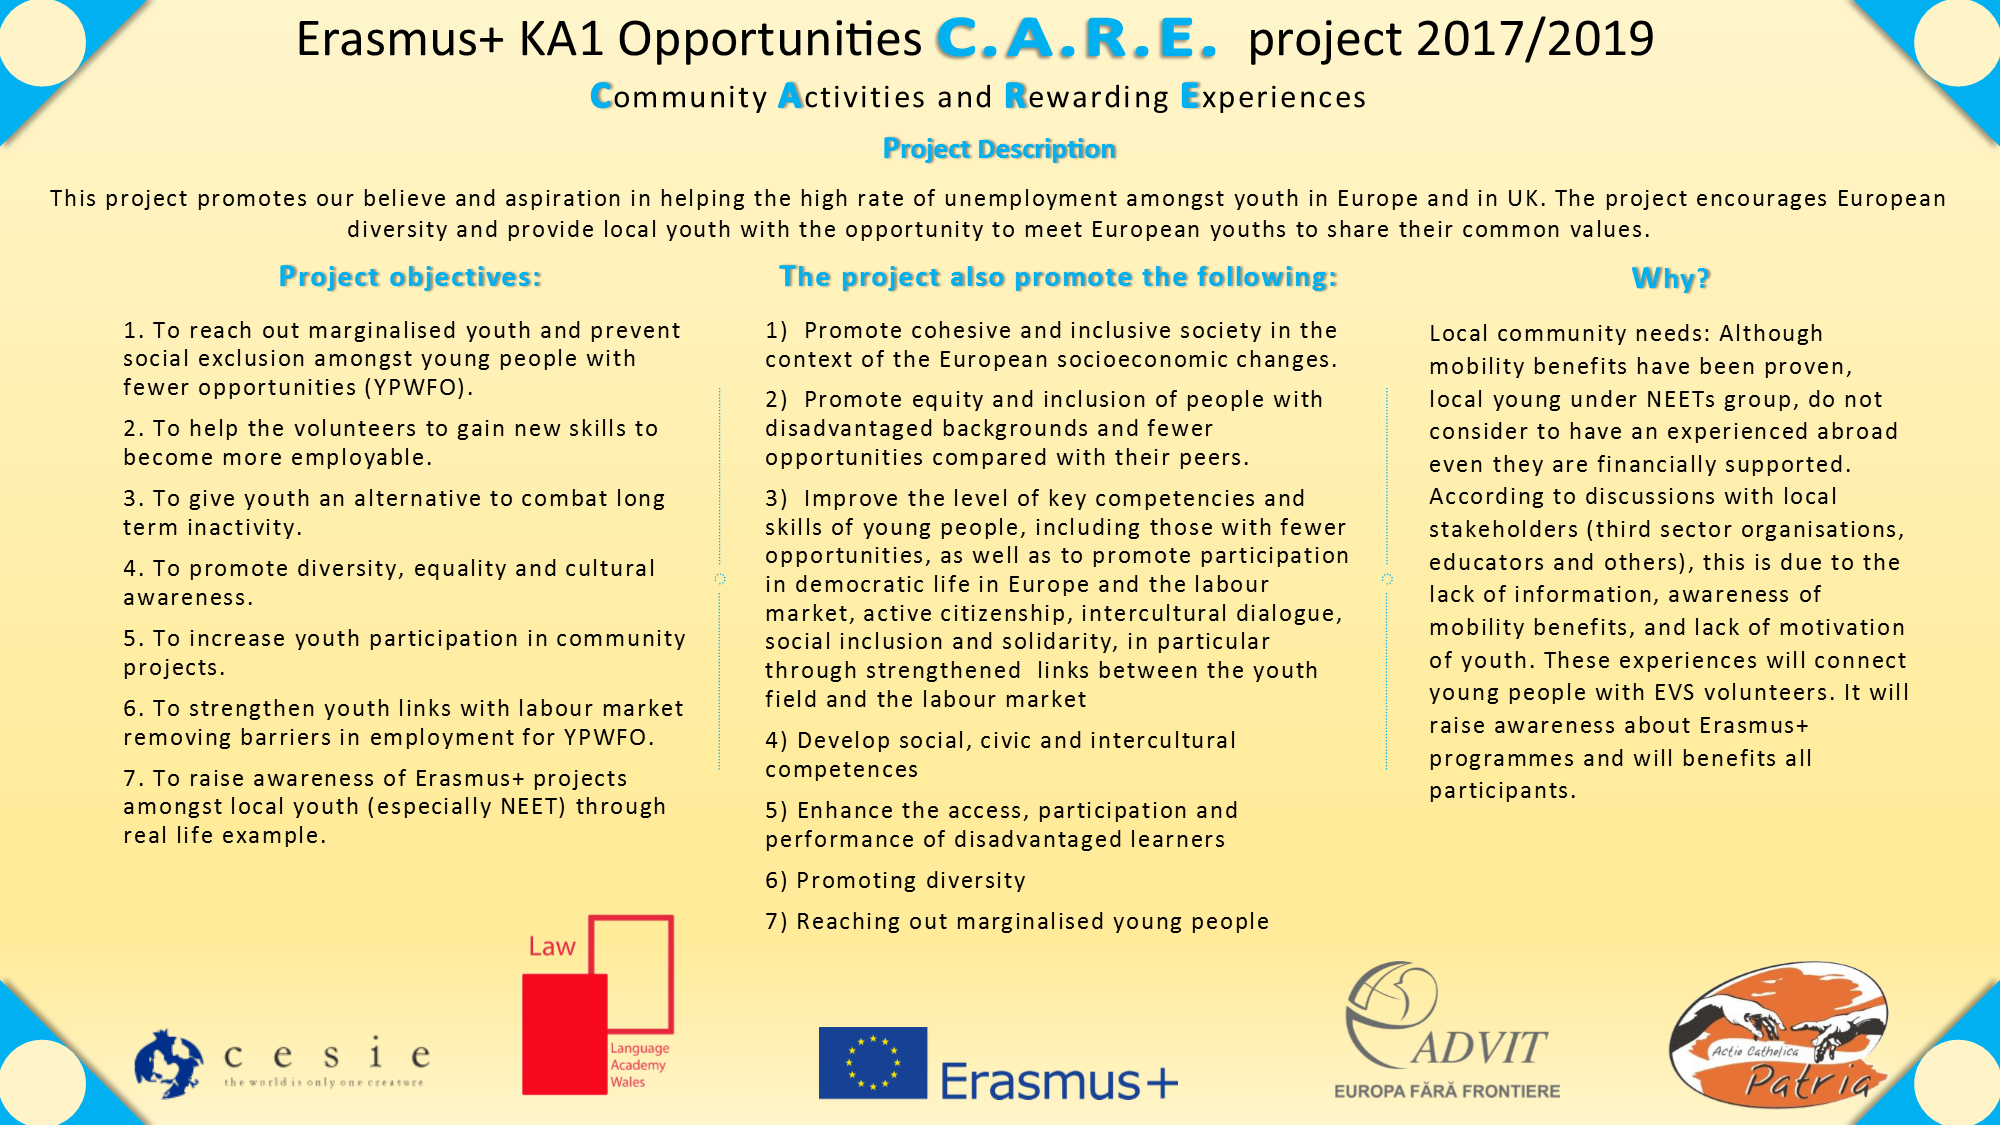 CARE erasmus+ KA1 project Cardiff